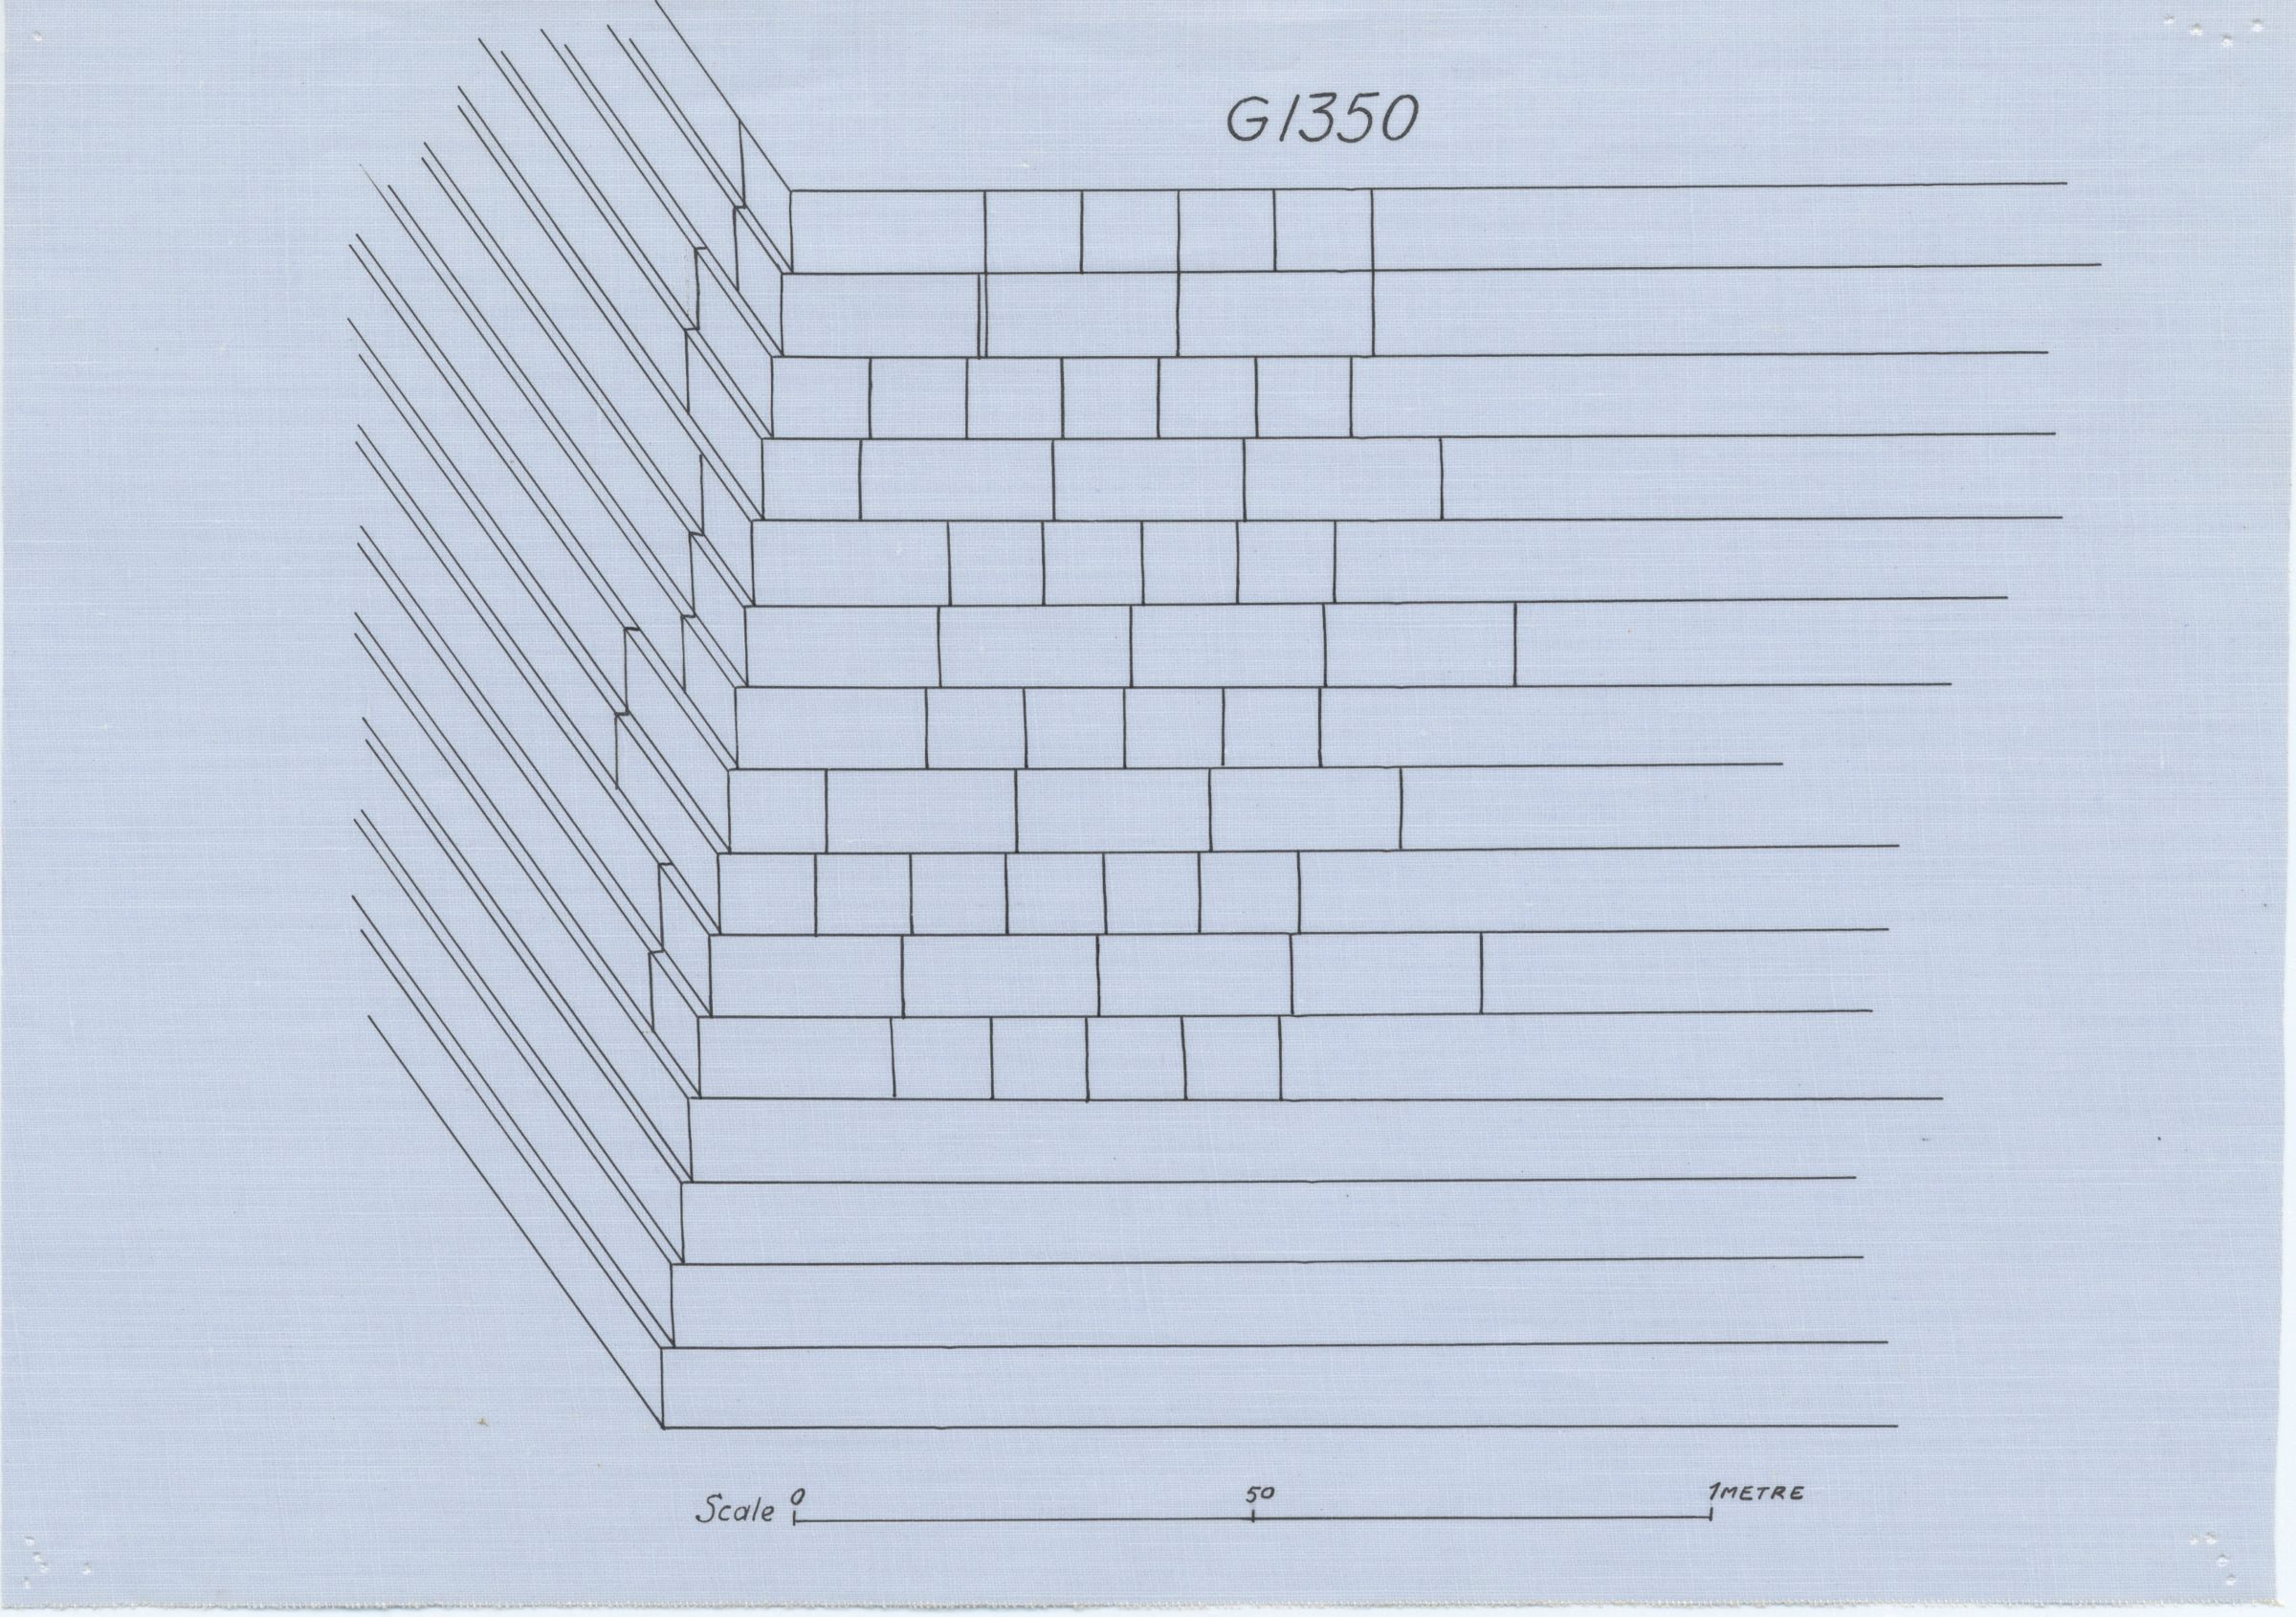 Maps and plans: G 1351, exterior corner